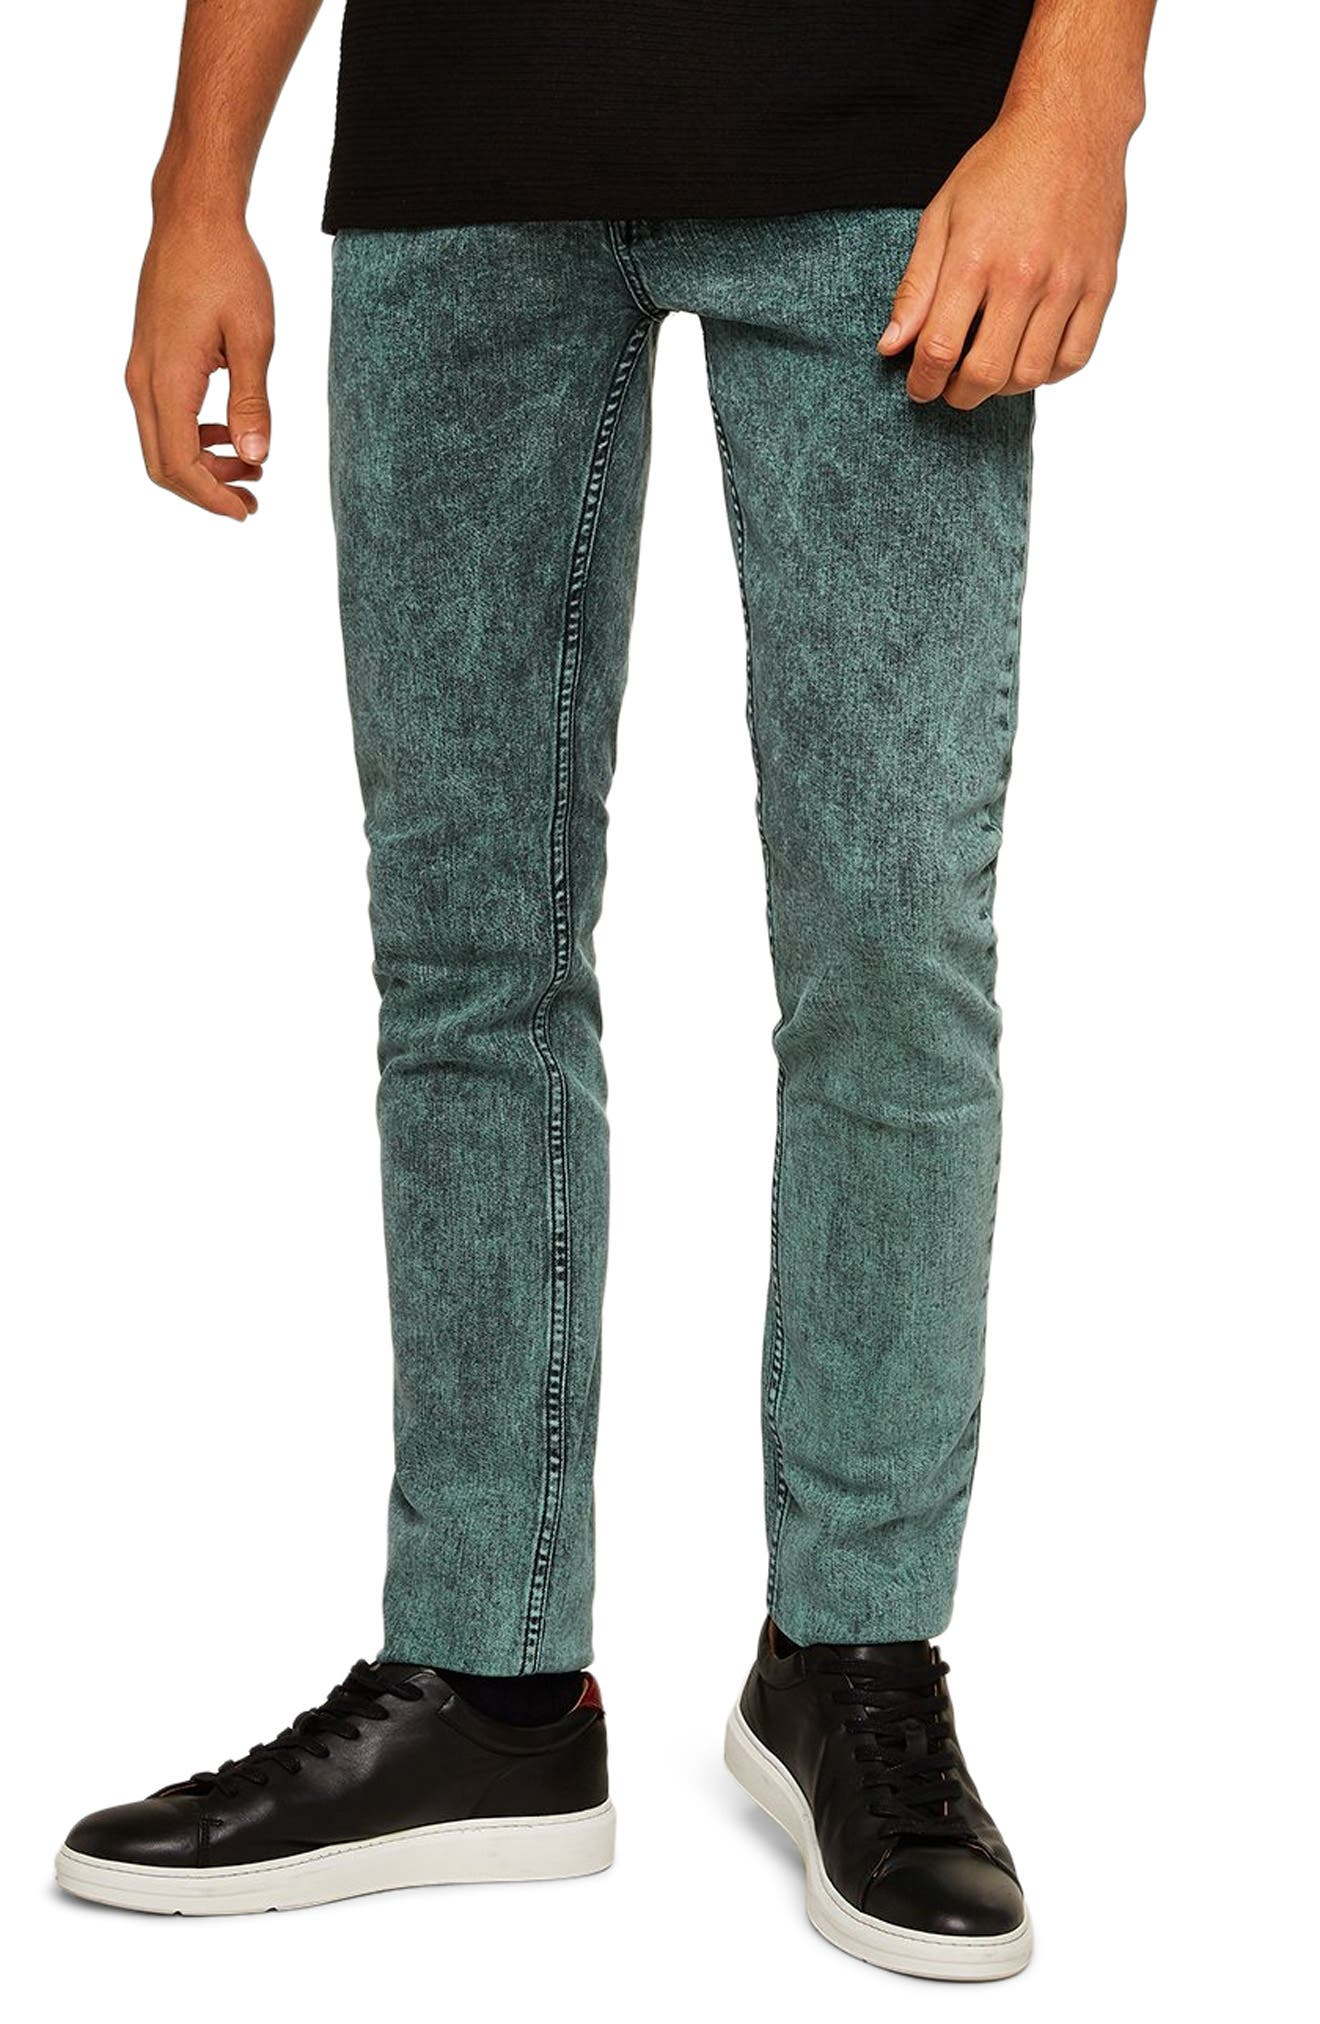 Acid Wash Stretch Skinny Jeans,                         Main,                         color, BLUE/GREEN MULTI